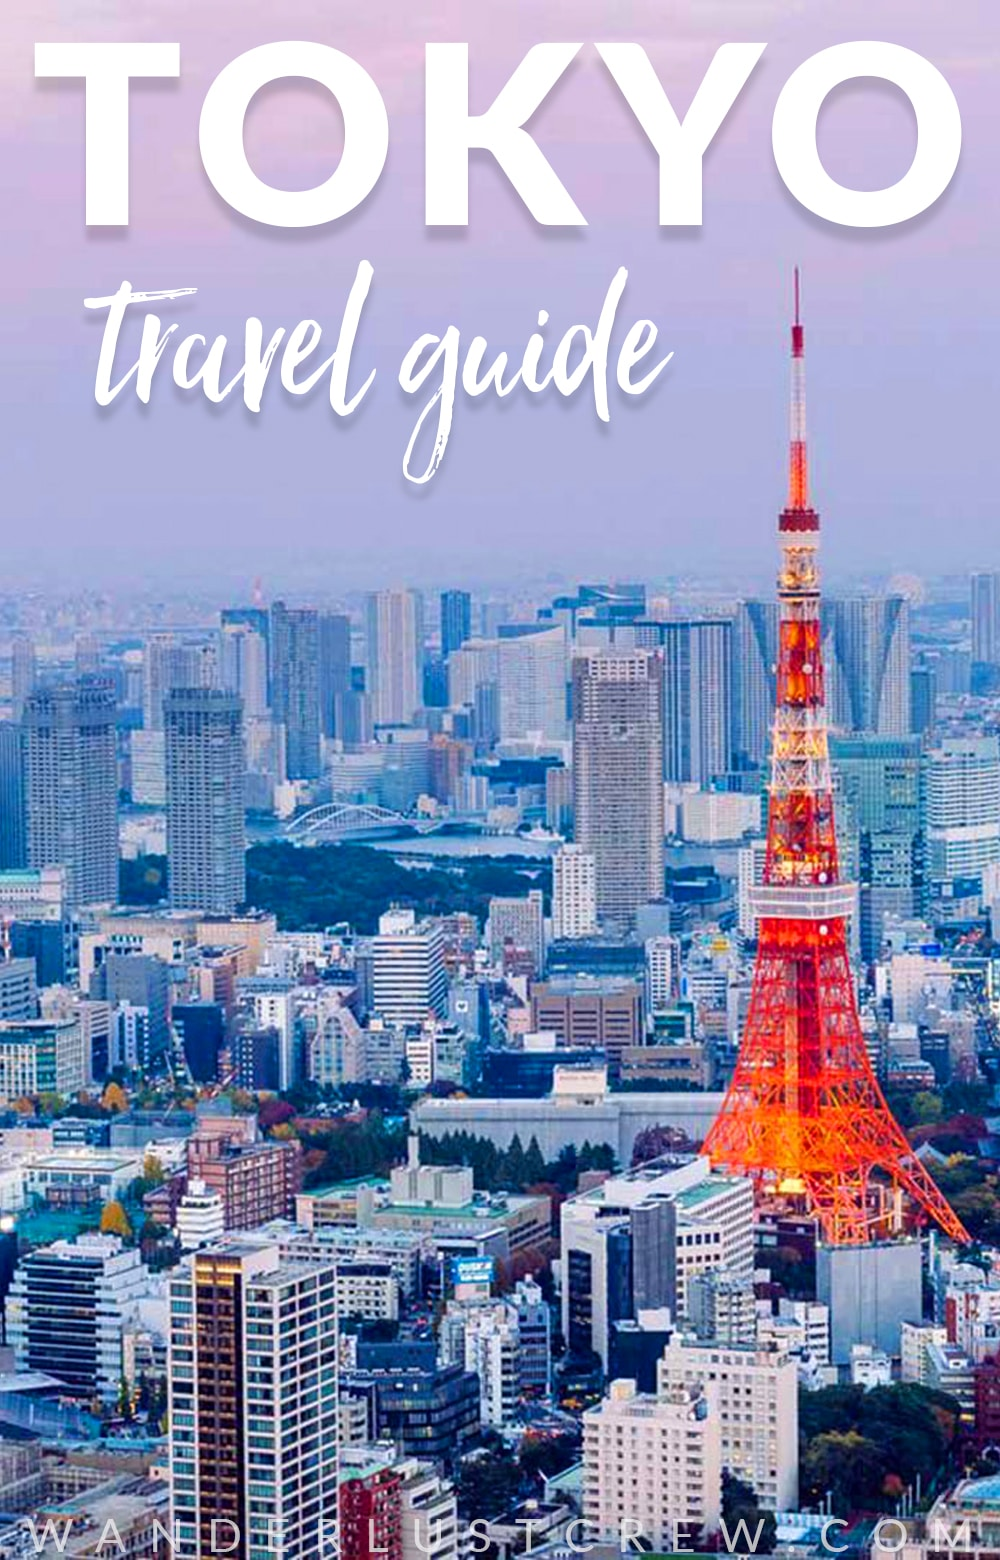 Wondering what to do in Tokyo? Find out my favorite activities and sites in this amazing city. #Tokyo #Japan